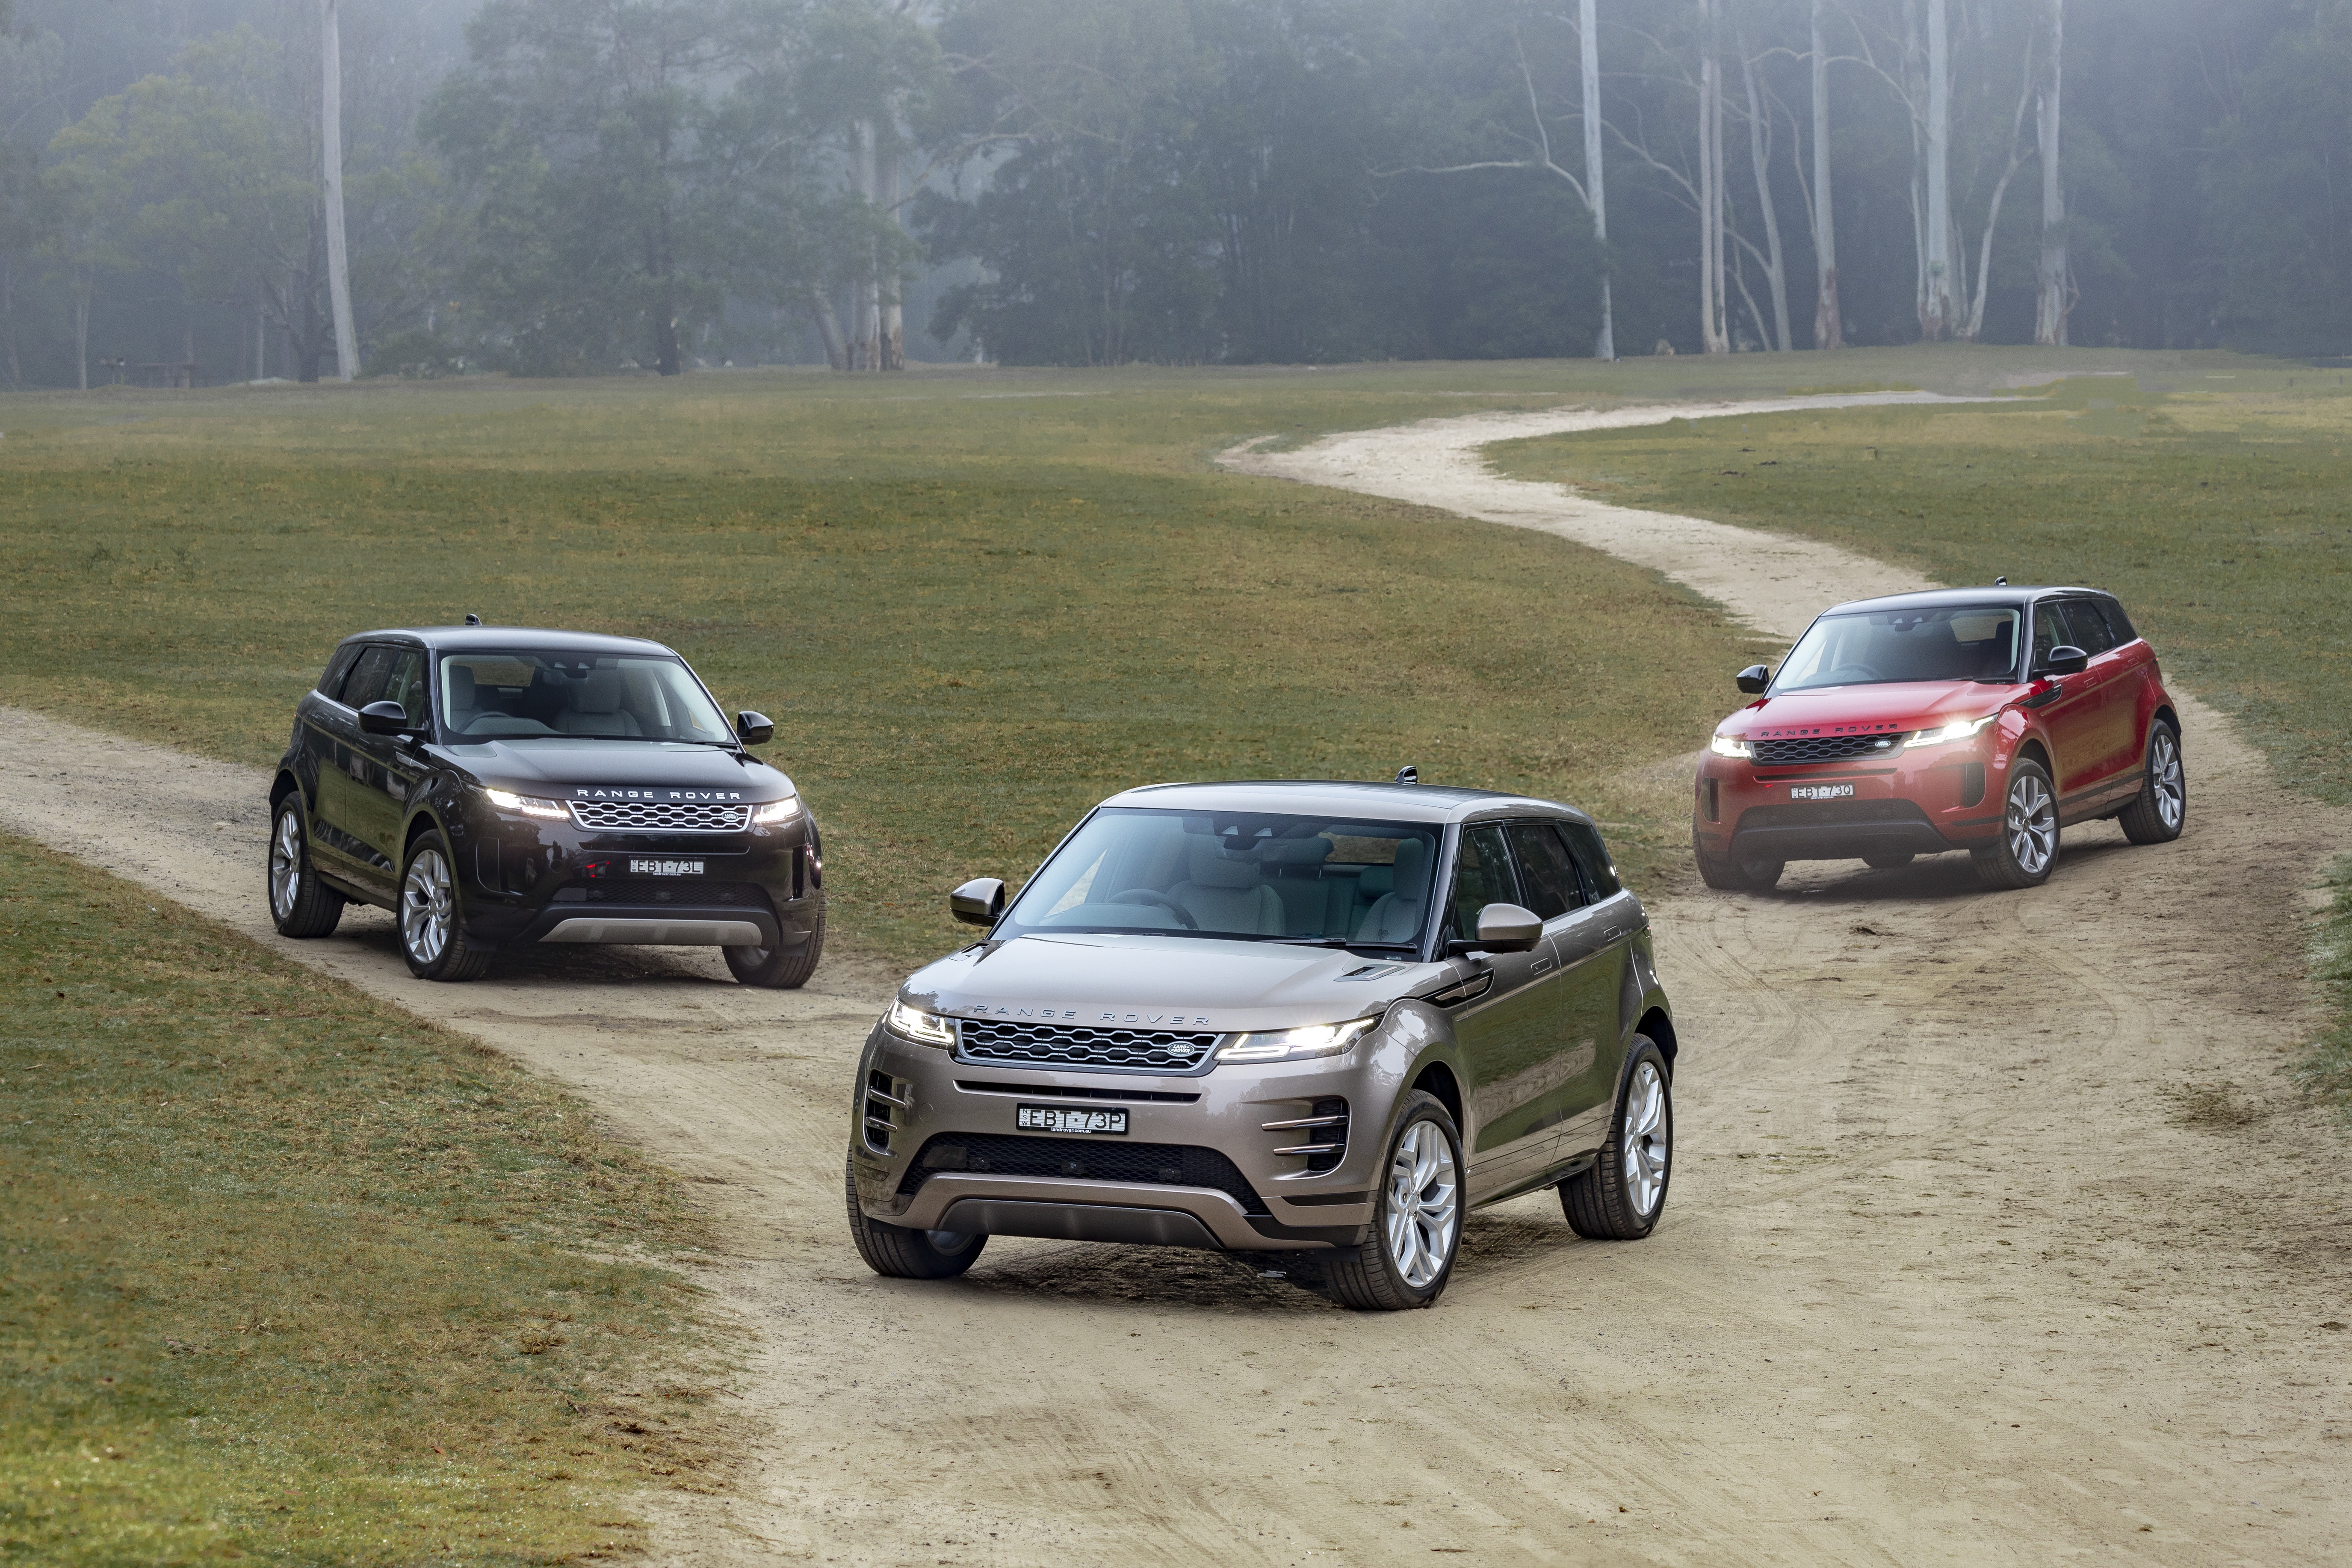 Why the new Range Rover Evoque should matter to you